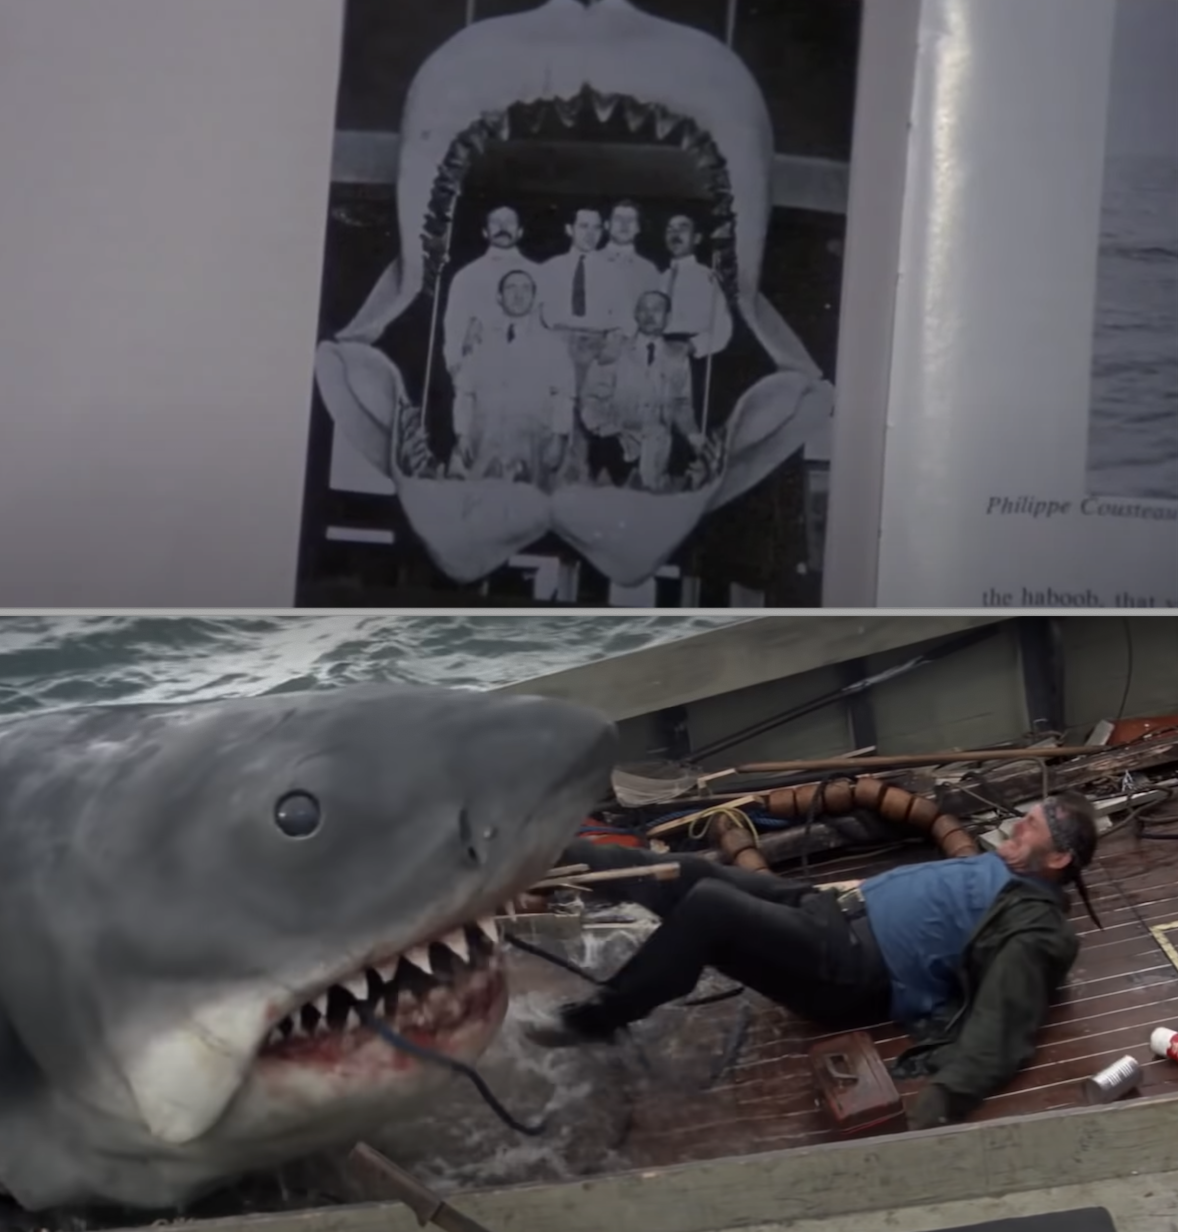 Bruce, the shark, attacking someone in a boat